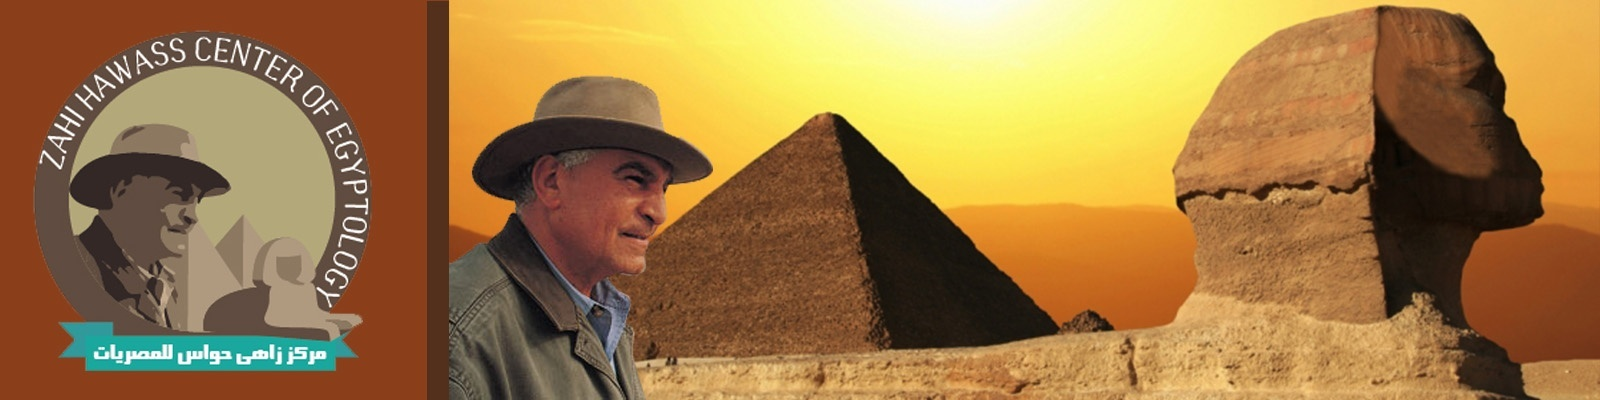 BA Establishes International Zahi Hawass Center of Egyptology